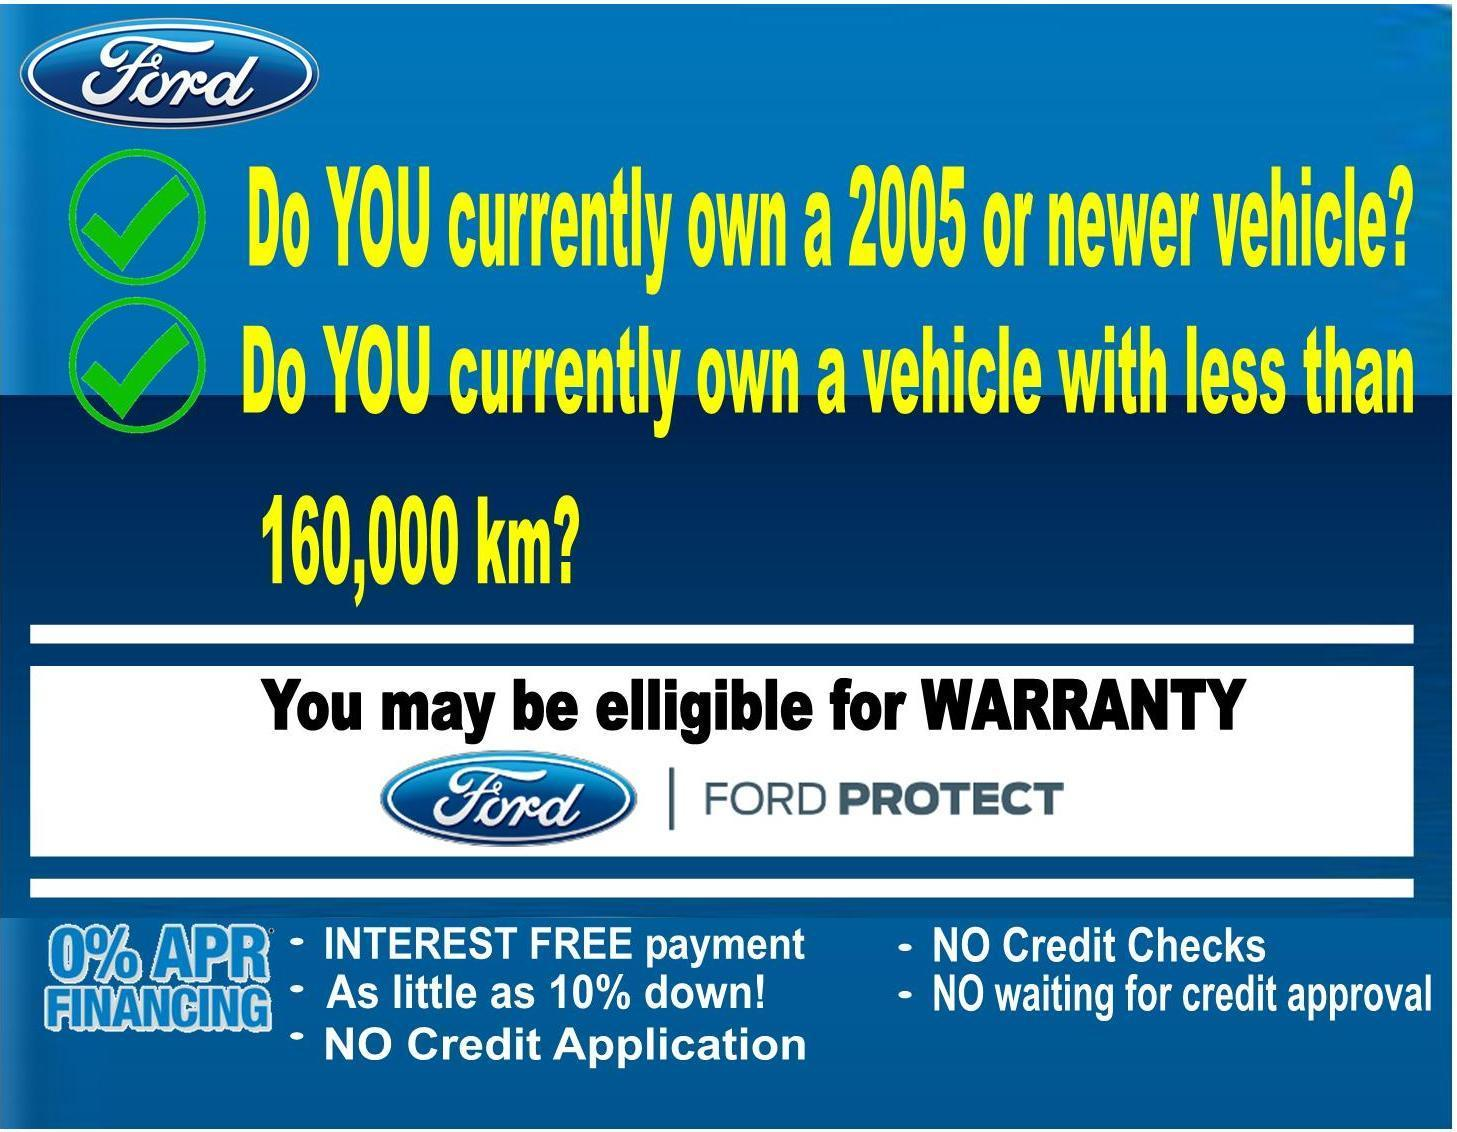 Ford Used Vehicle Offers image